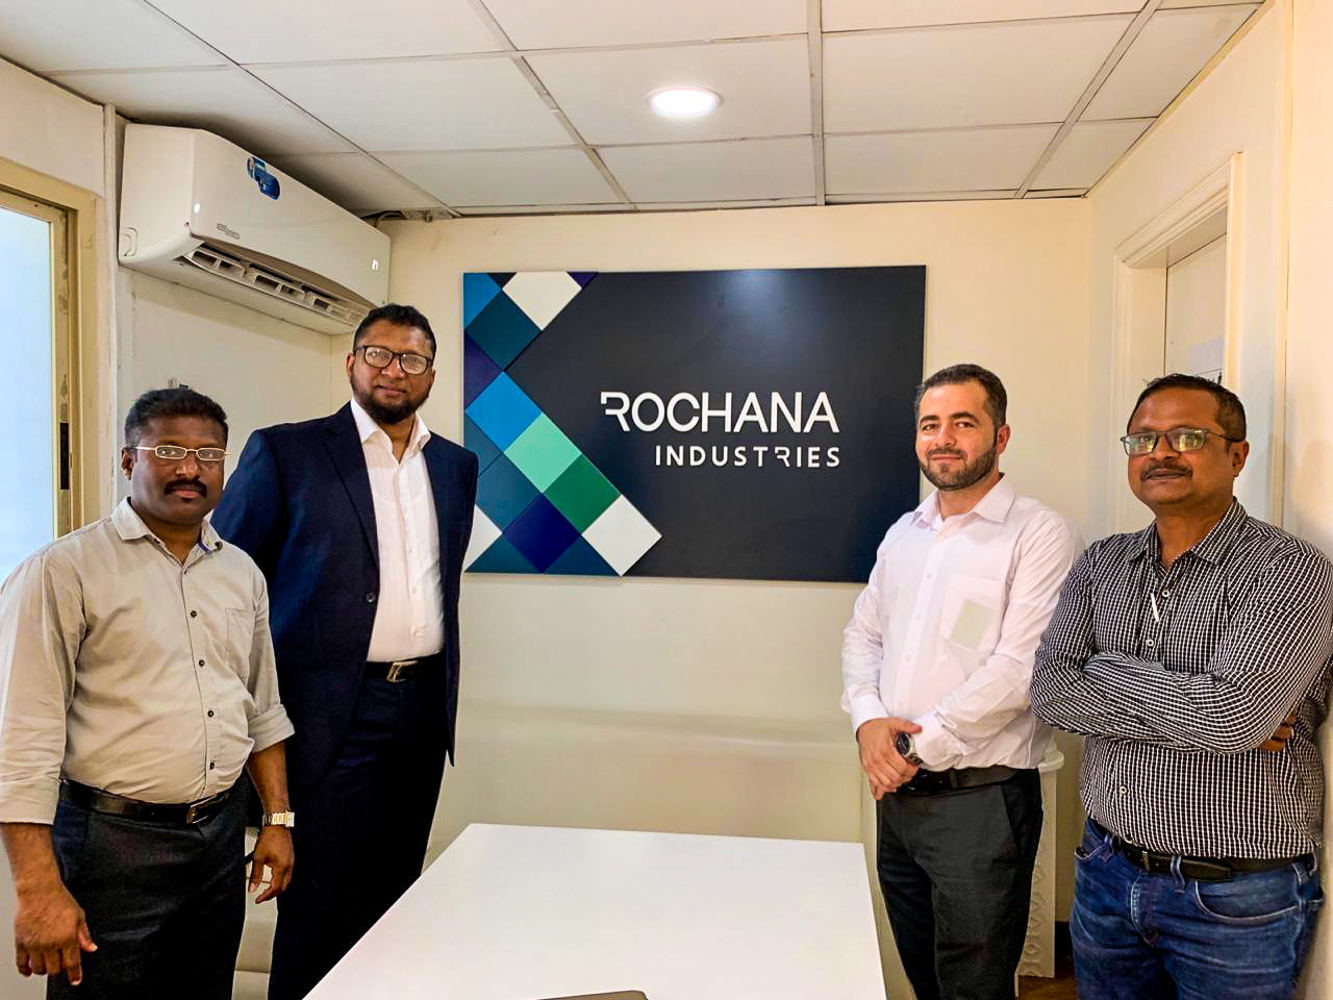 Rochana Industries: Photo 2